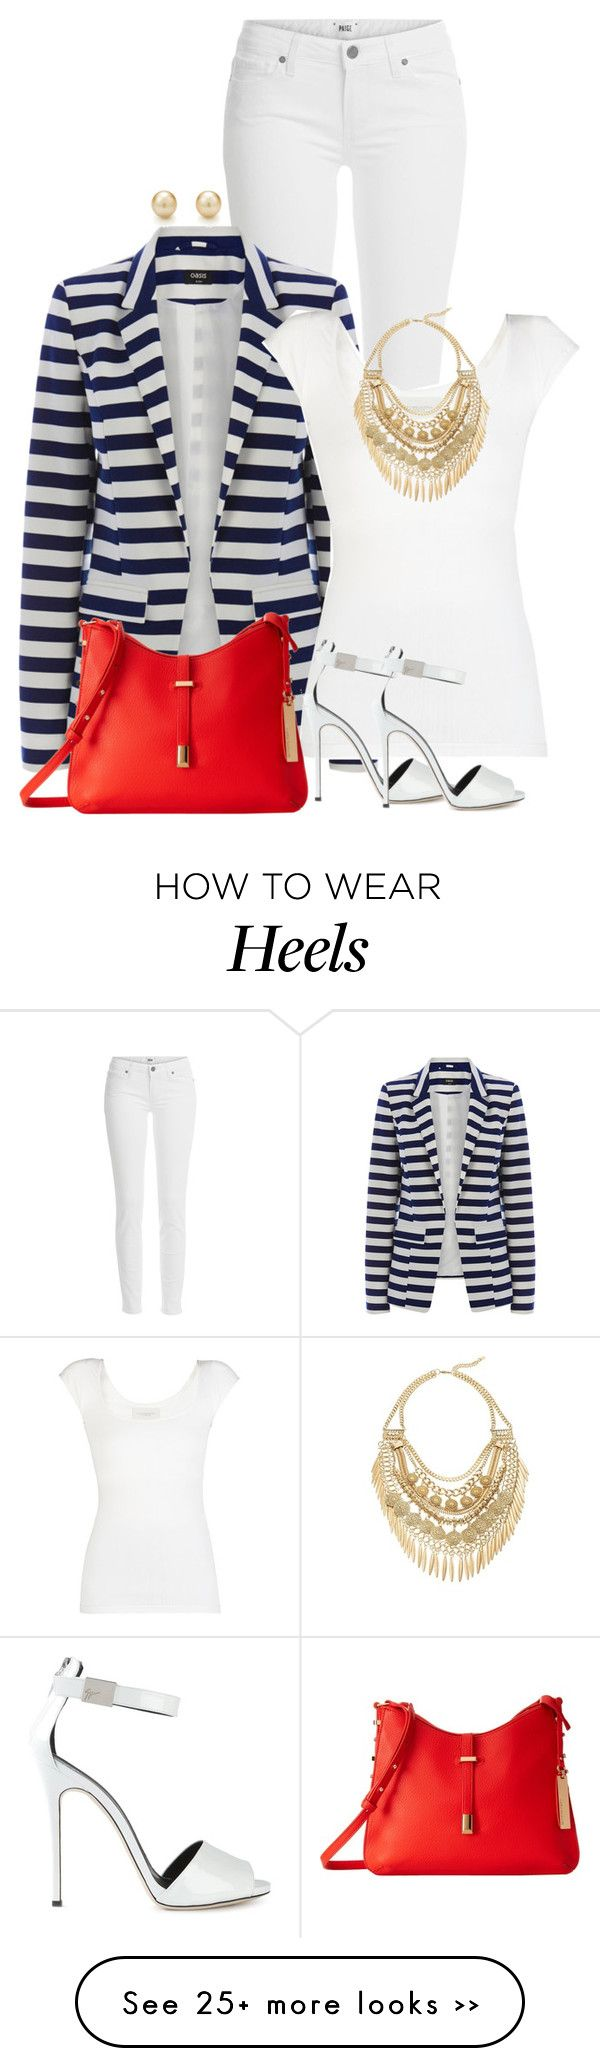 """Blazer, heels and jeans"" by ginga1203 on Polyvore"